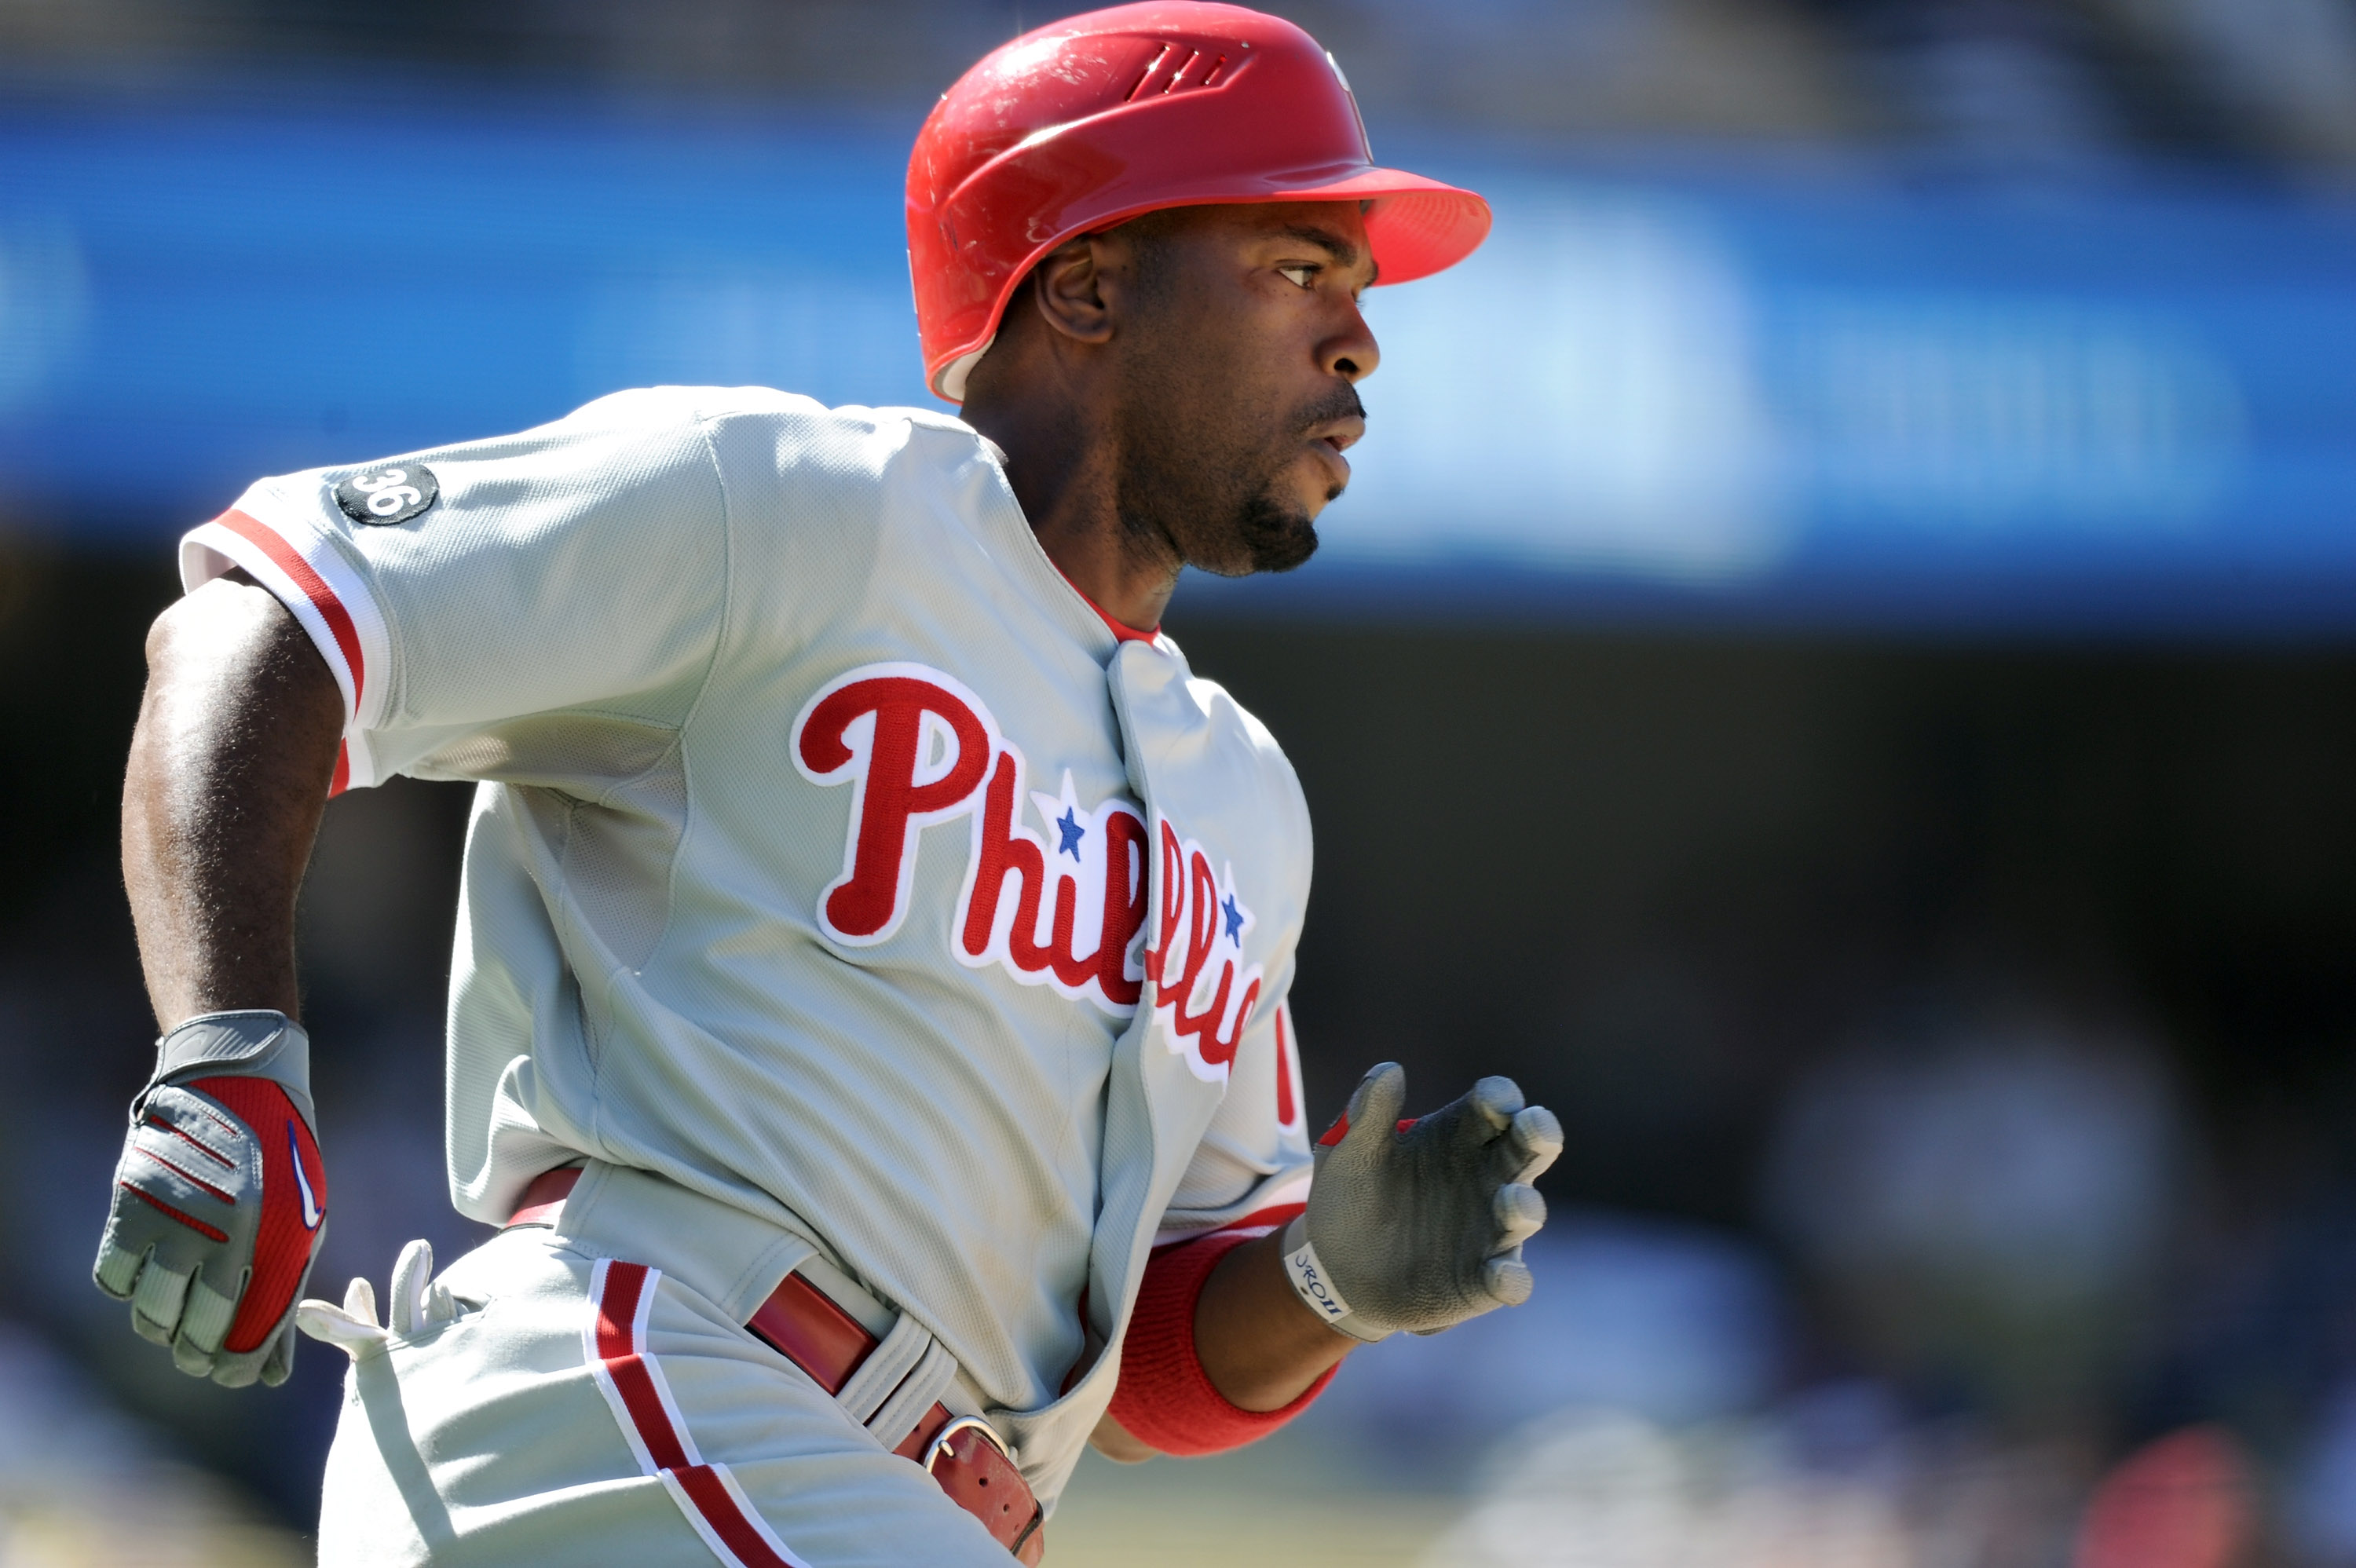 LOS ANGELES, CA - SEPTEMBER 01:  Jimmy Rollins #11 of the Philadelphia Phillies heads to second base for a double against the Los Angeles Dodgers at Dodger Stadium on September 1, 2010 in Los Angeles, California.  (Photo by Harry How/Getty Images)